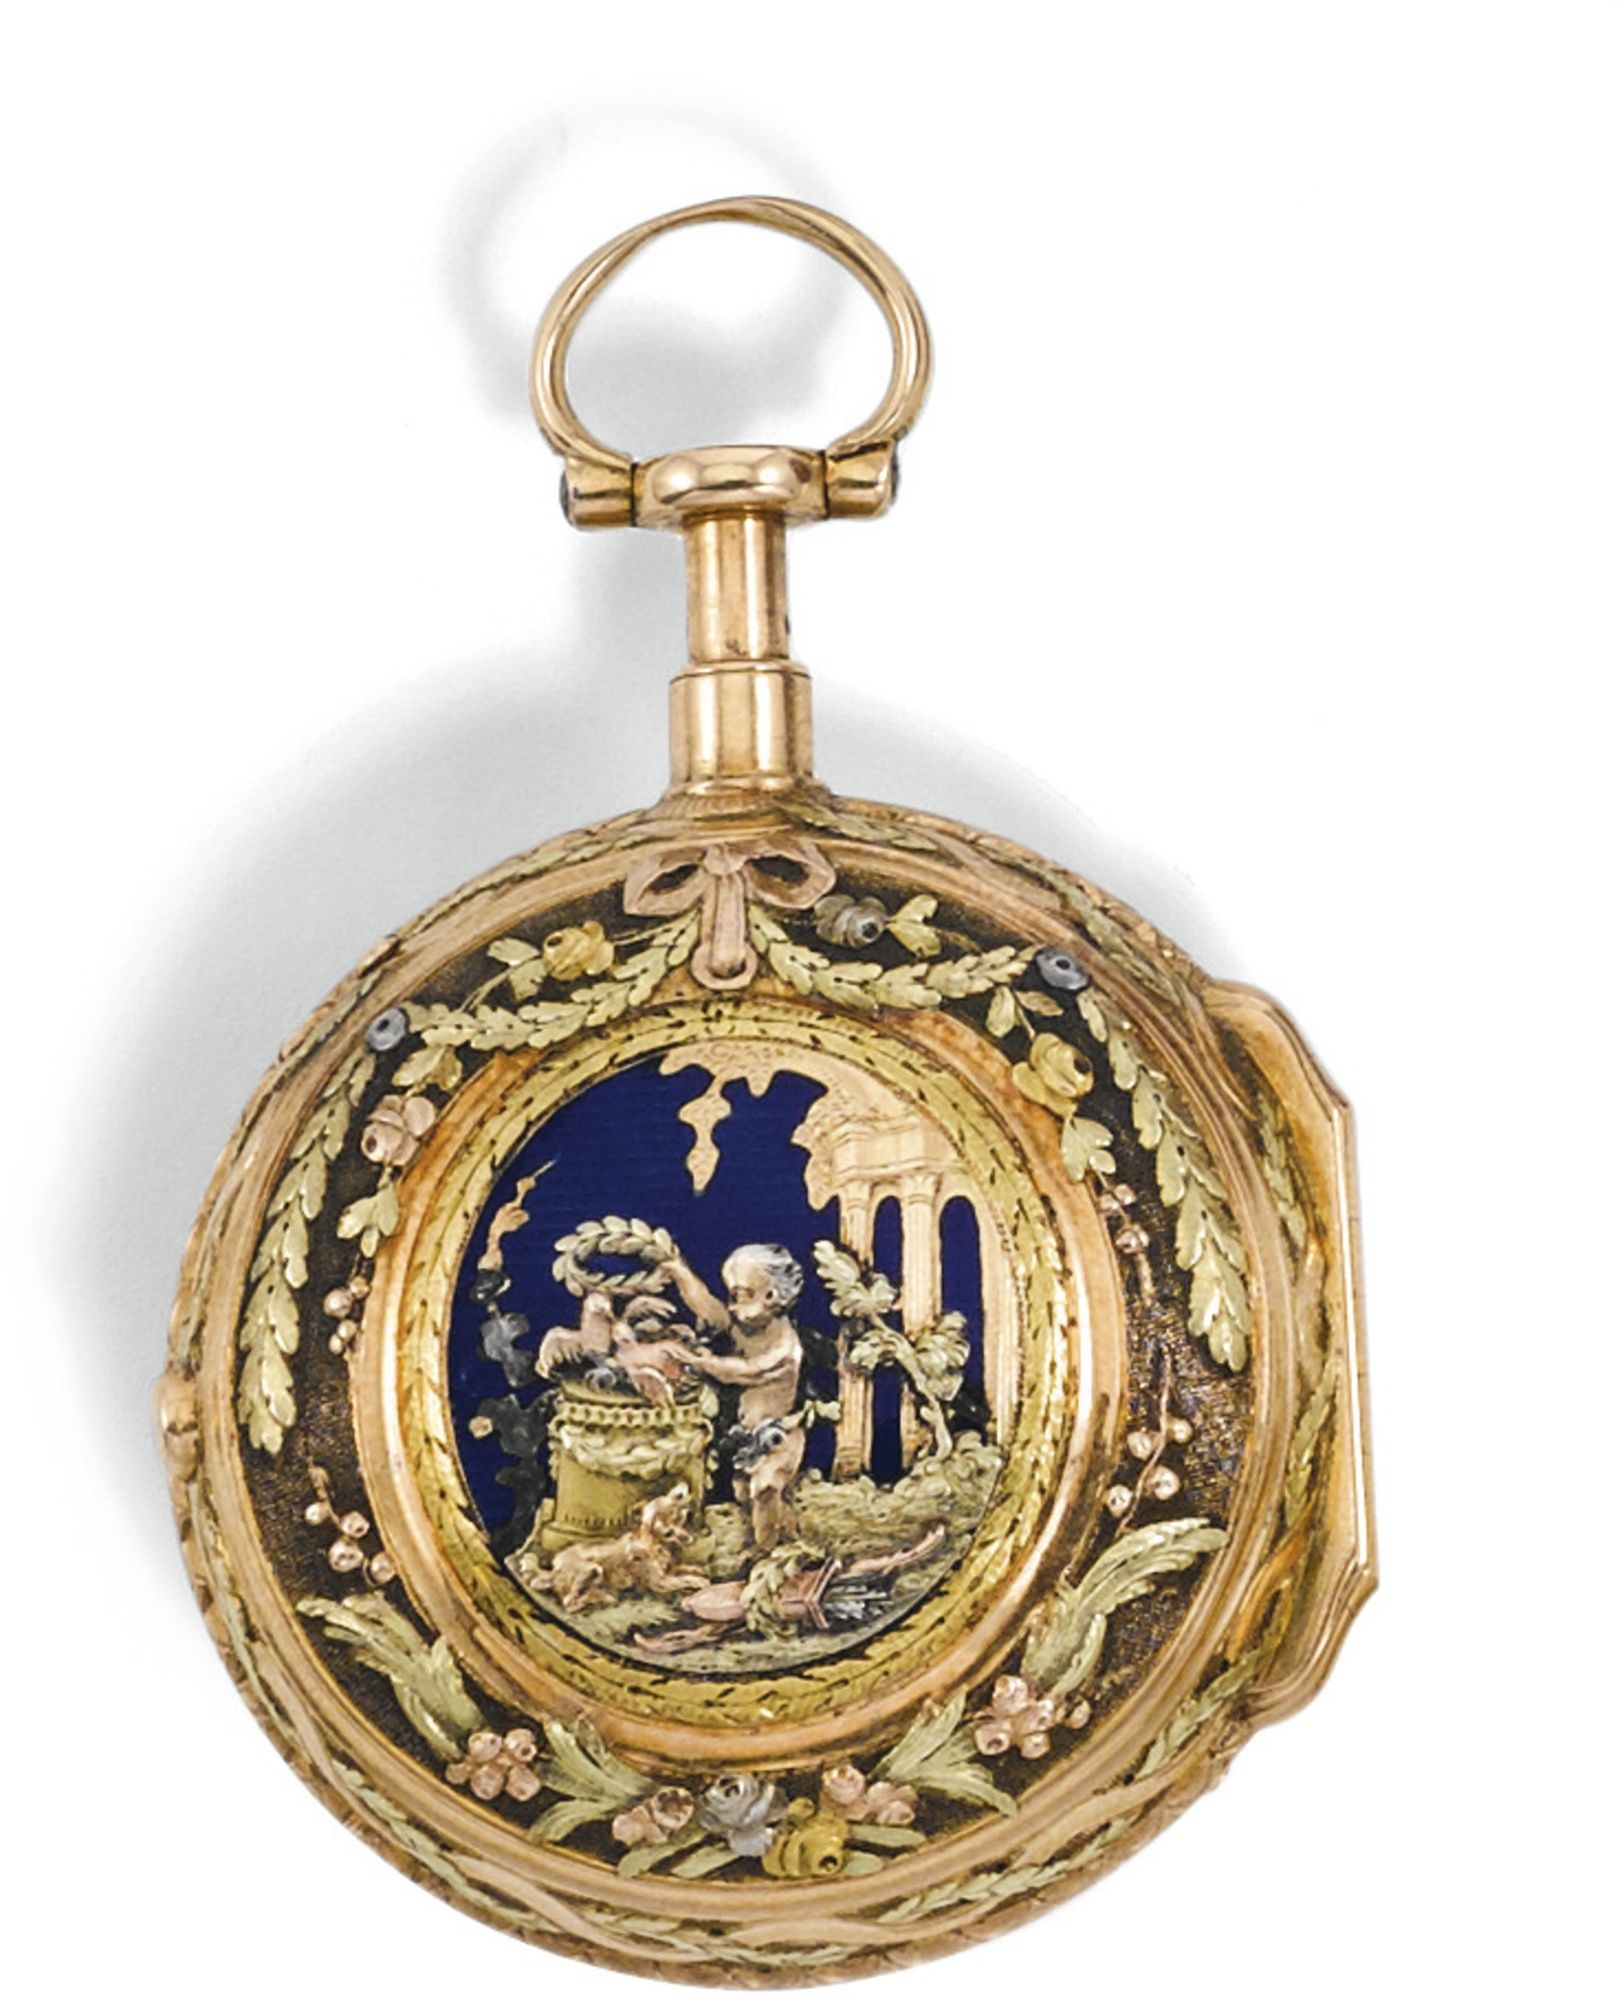 Jean antoine lepine a gold repeating verge watch with engraved and jean antoine lepine a gold repeating verge watch with engraved and enamel scene circa 1760 jeuxipadfo Image collections